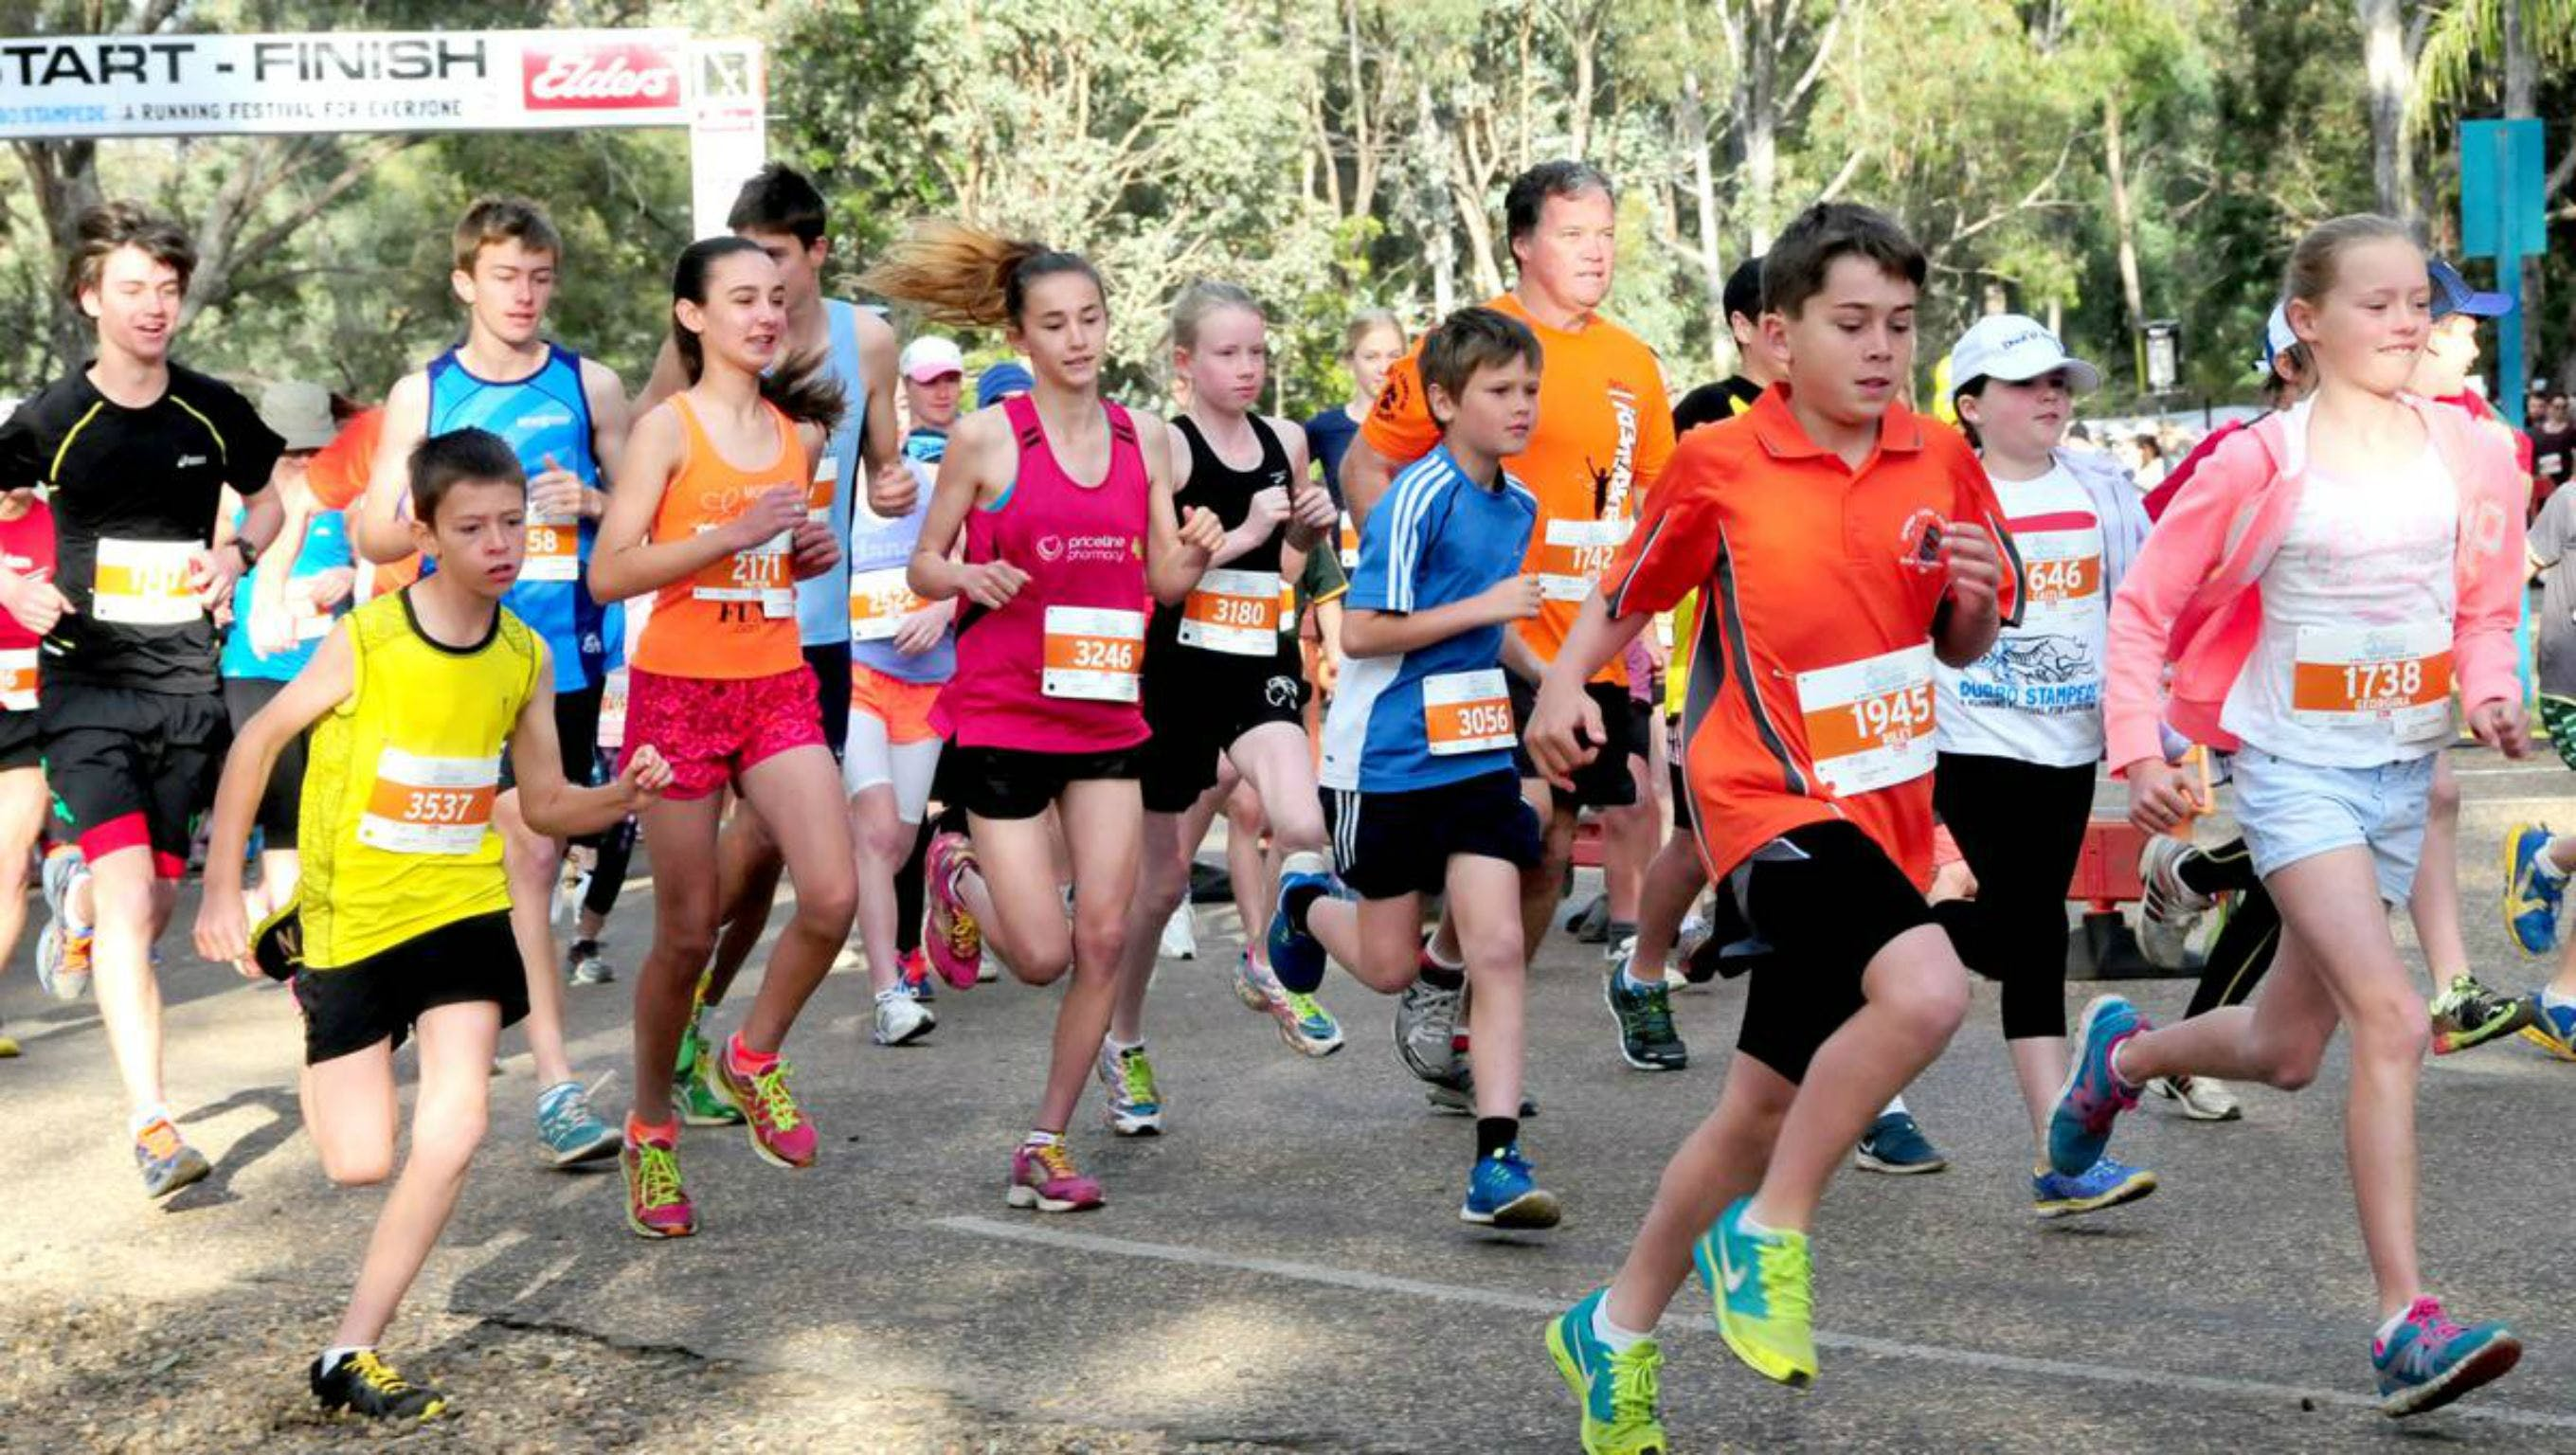 MAAS Group Dubbo Stampede Running Festival - Sydney Tourism